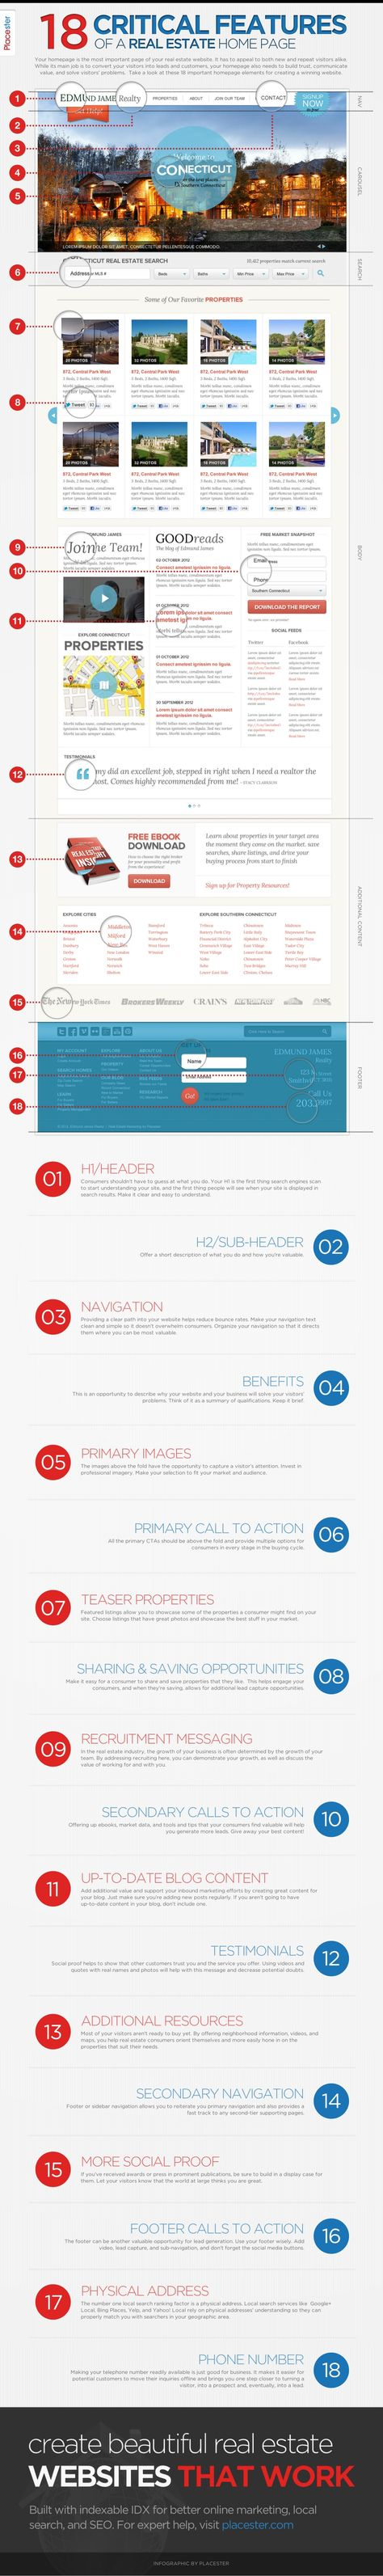 [Infographic] Anatomy of a Real Estate Marketing Website